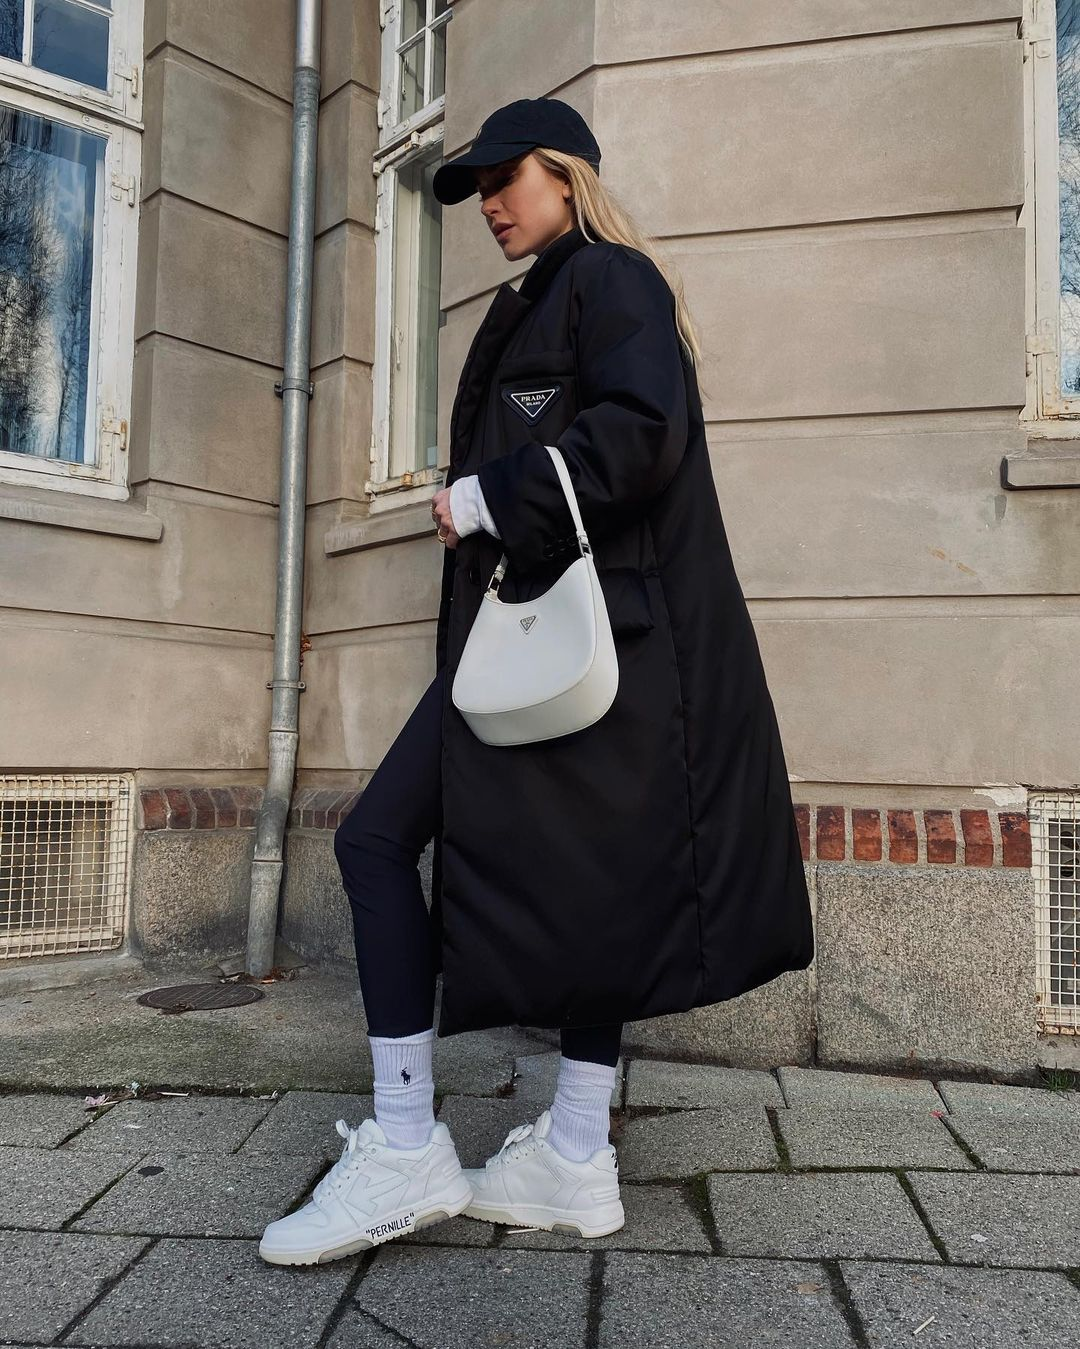 pernille-teisbaek-prada-re-nylon-gabardine-puffer-coat-instagram